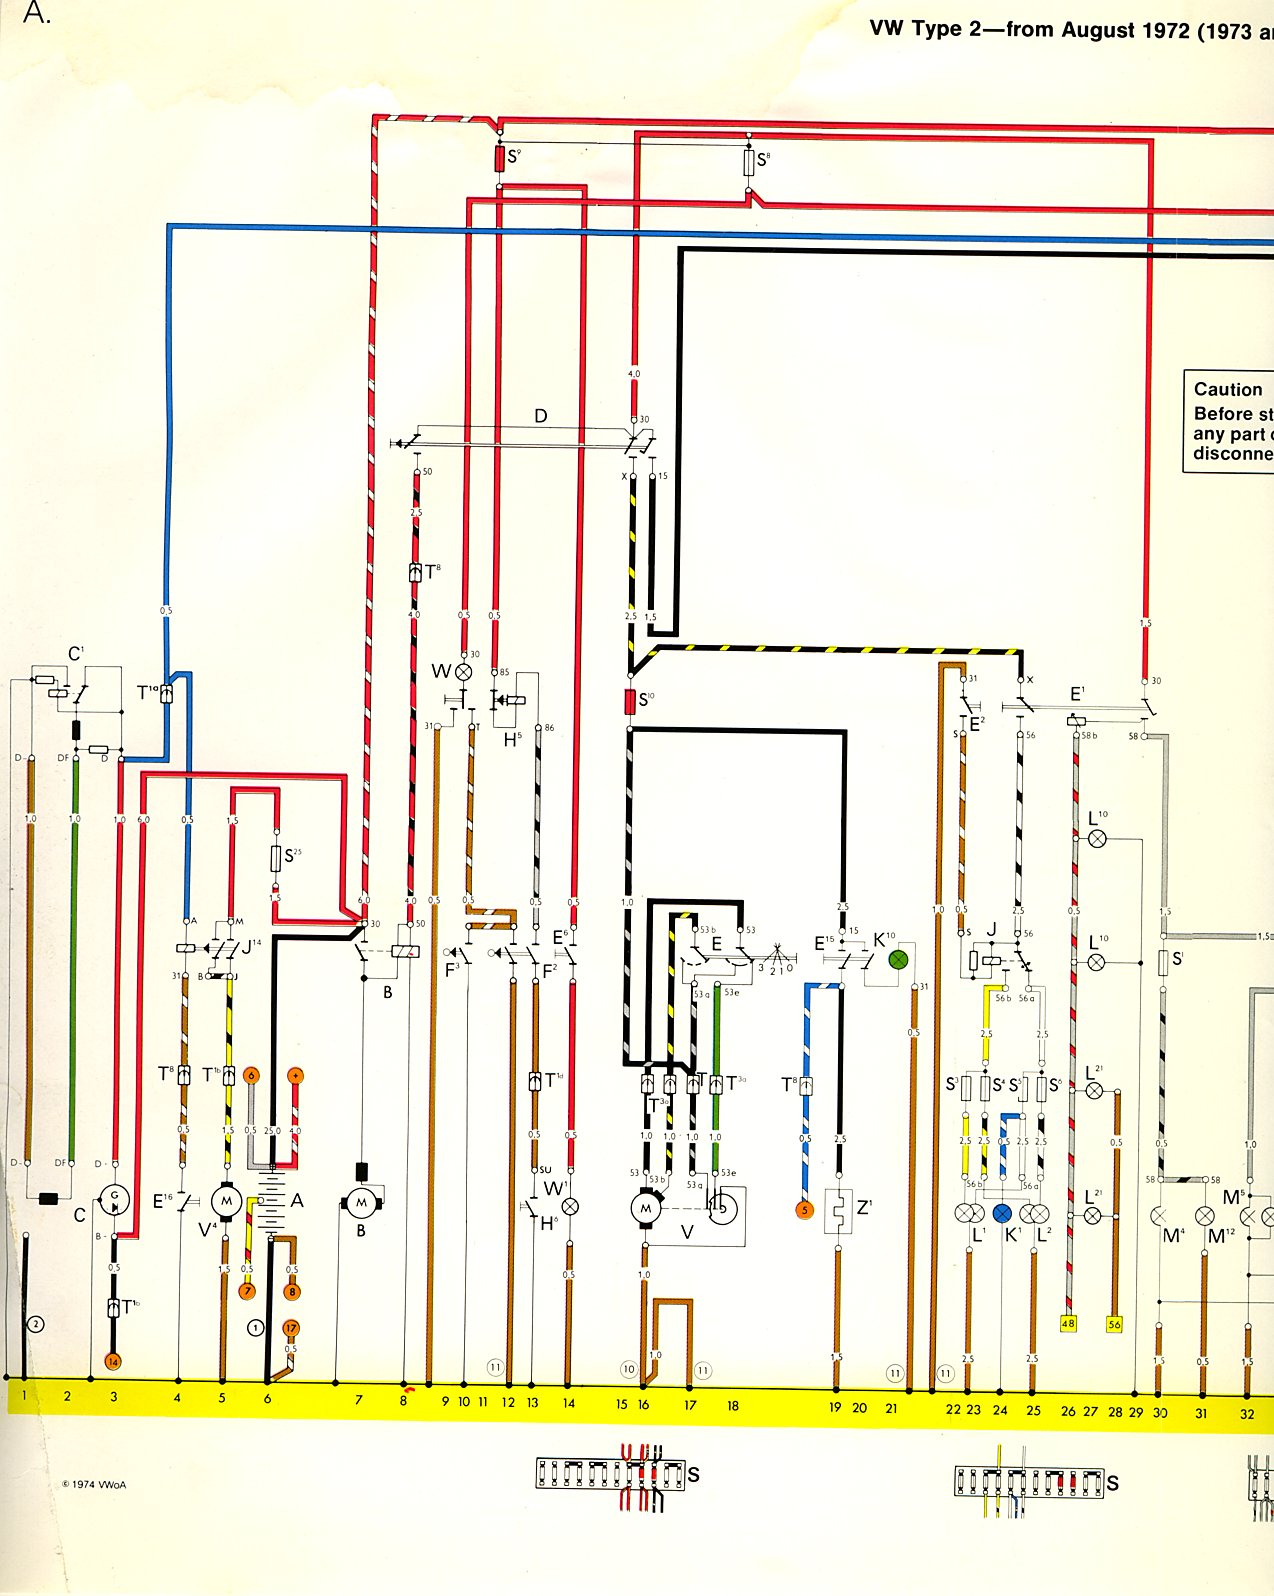 Wiring Diagram 1959 Vw bus electrical wiring vw type 2 fuse ... on